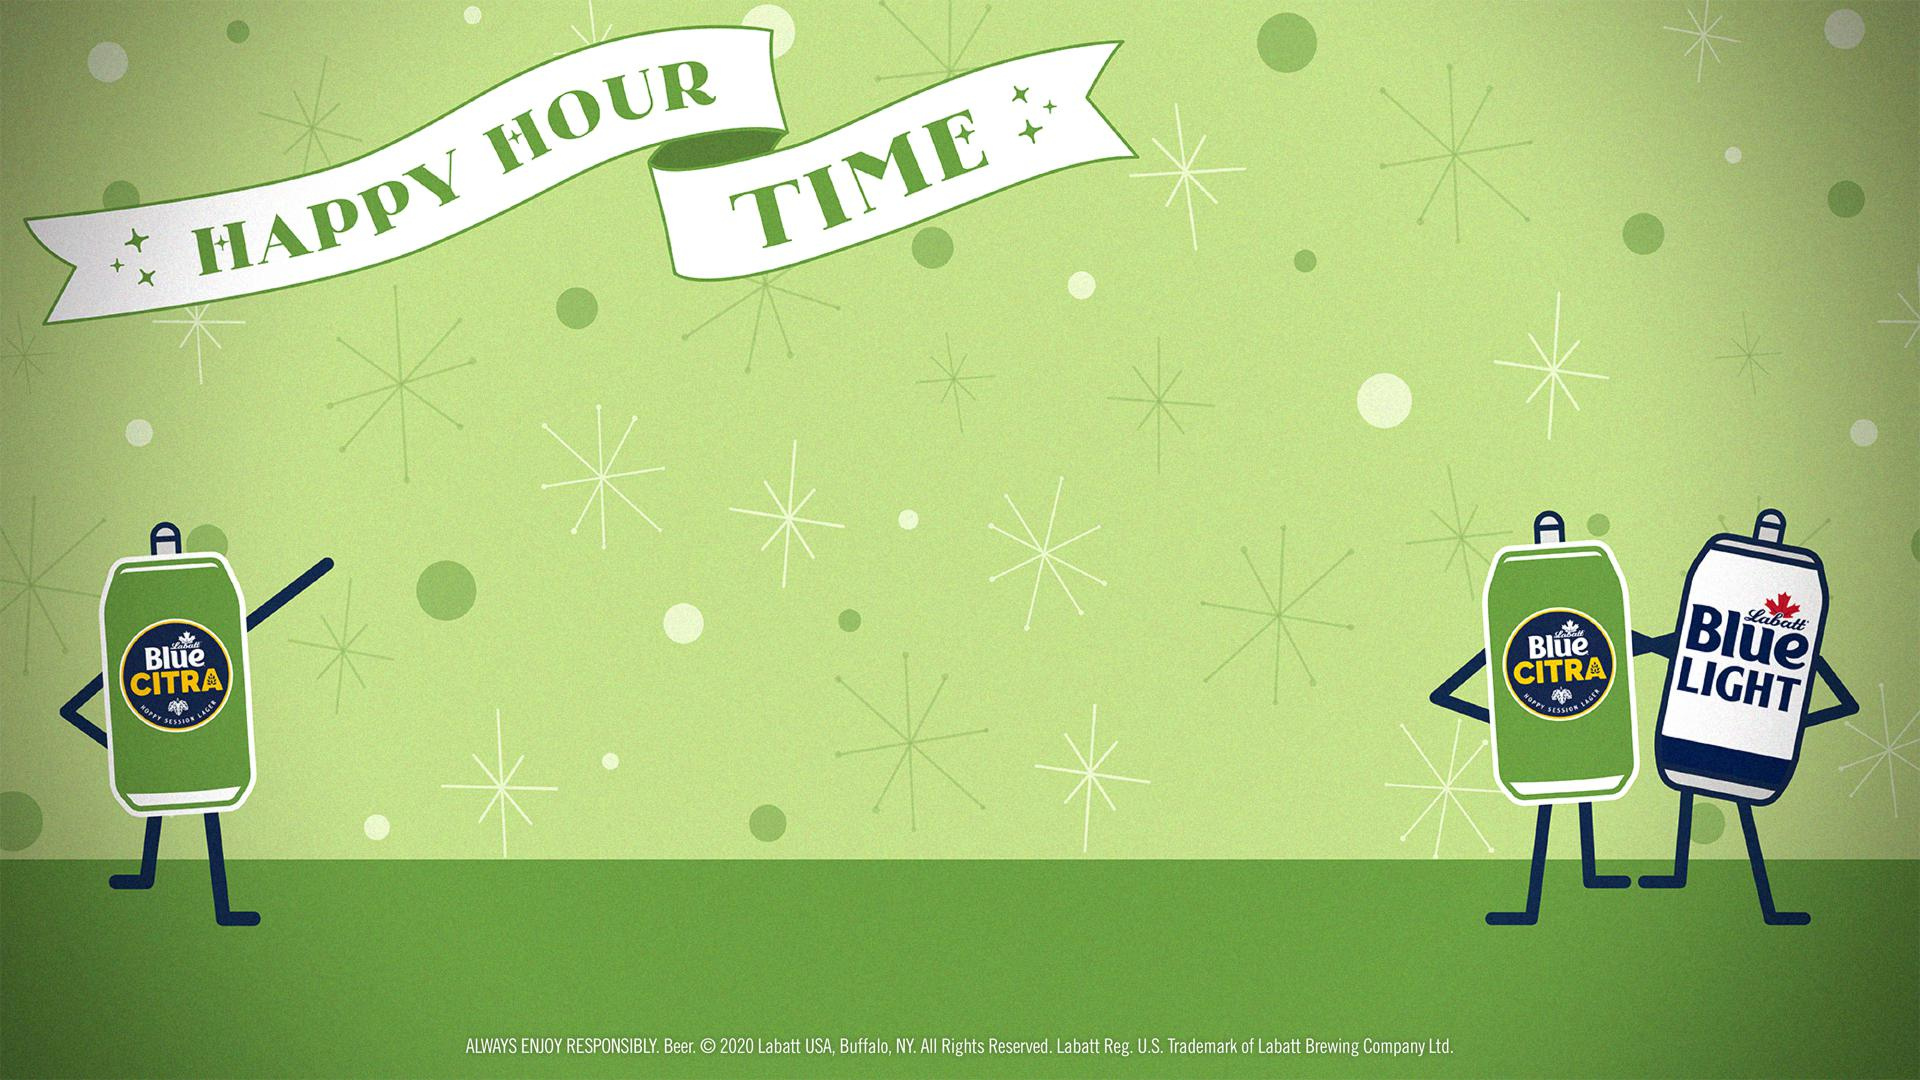 Citra Happy Hour Time Background